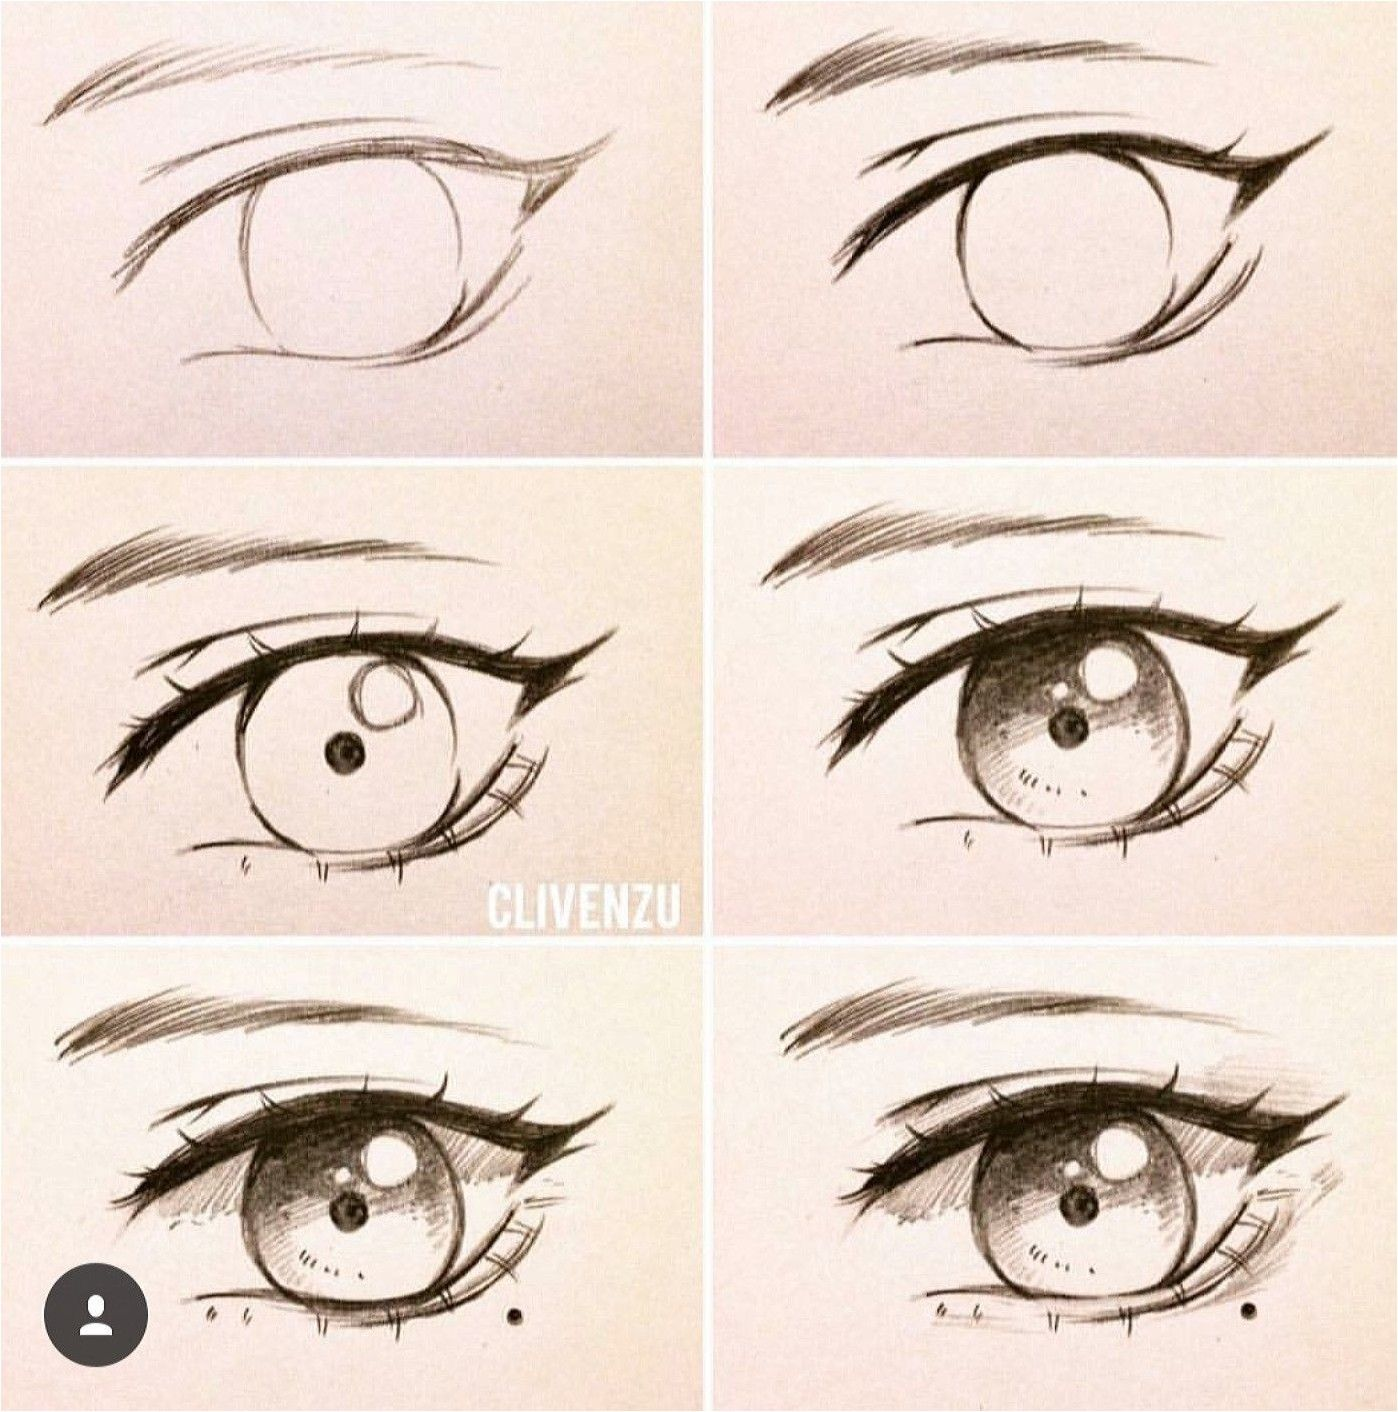 Eyelashes Maximise Your Flutter As Well As Put The Supreme Finishing Touch On Your Looks With Elegant Artificial Eyelashes Whic Anime Eyes Sketches Drawings